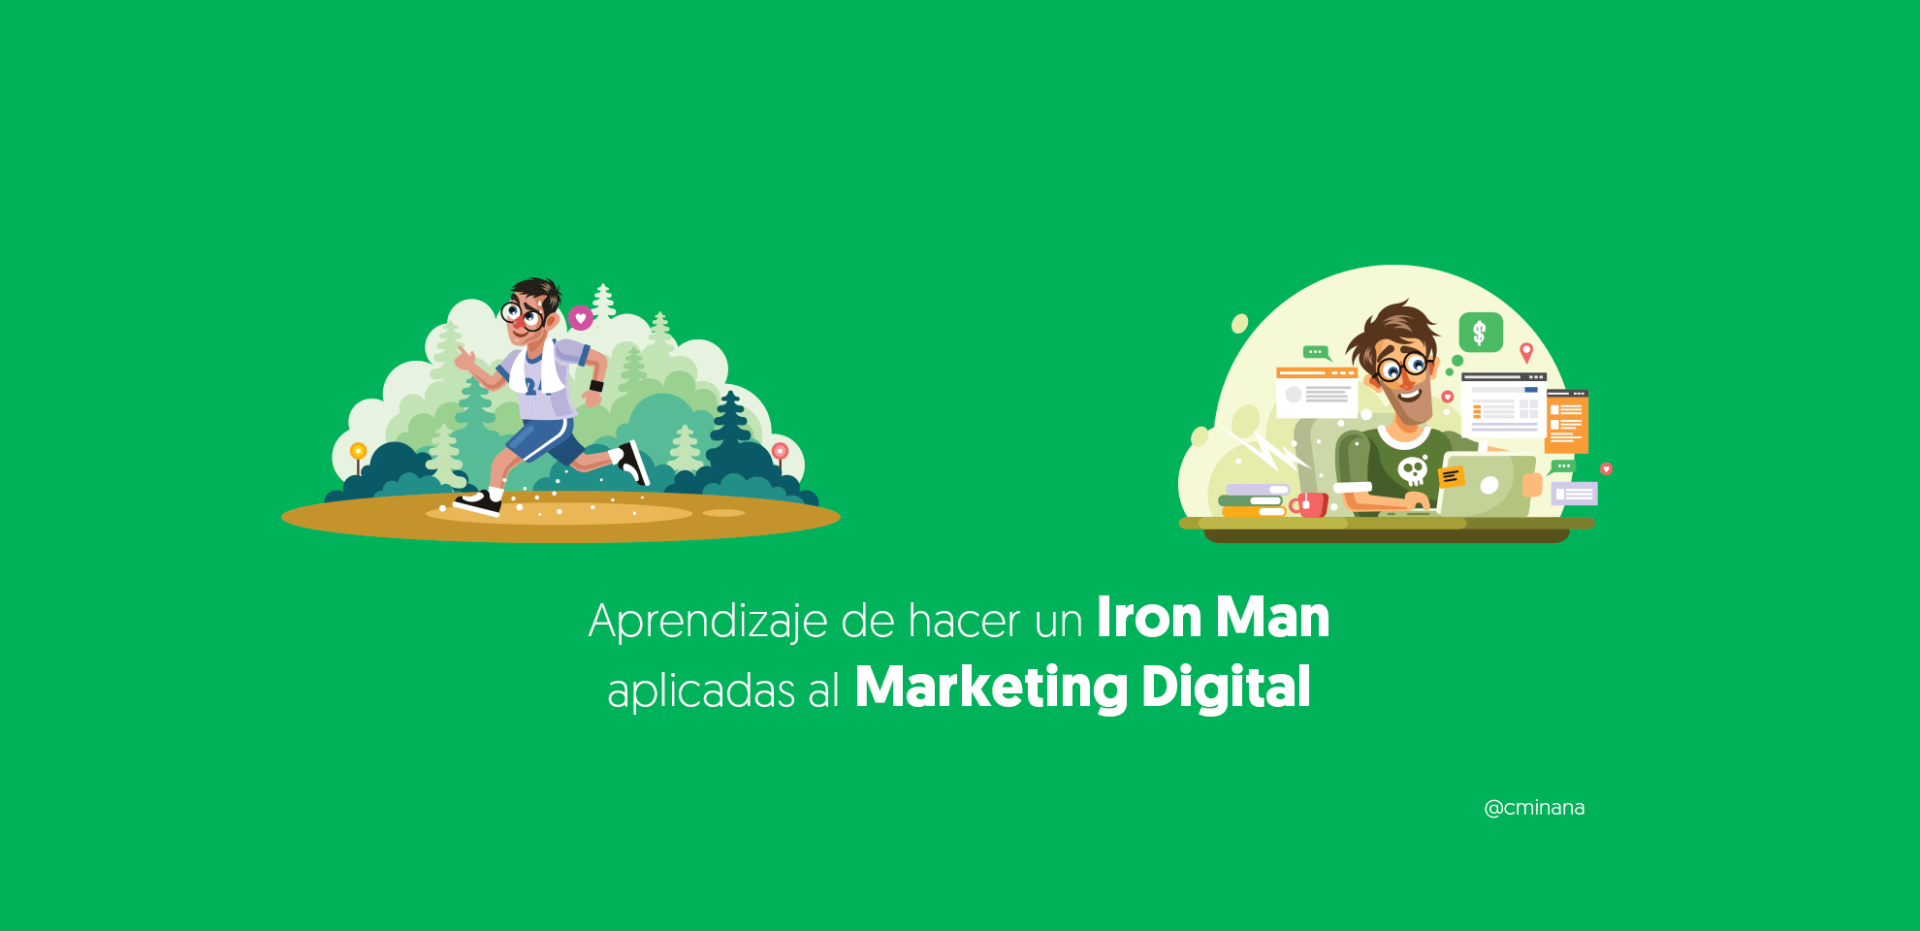 ironman marketing digital